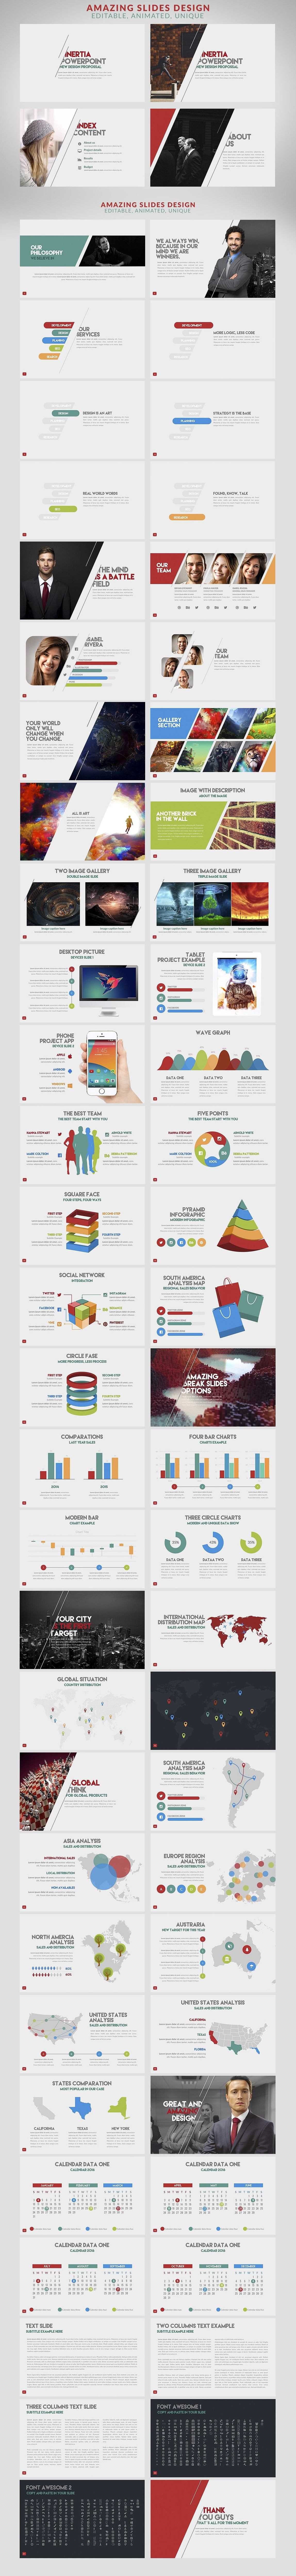 20 Powerpoint Templates with 81% OFF - Inertia 02